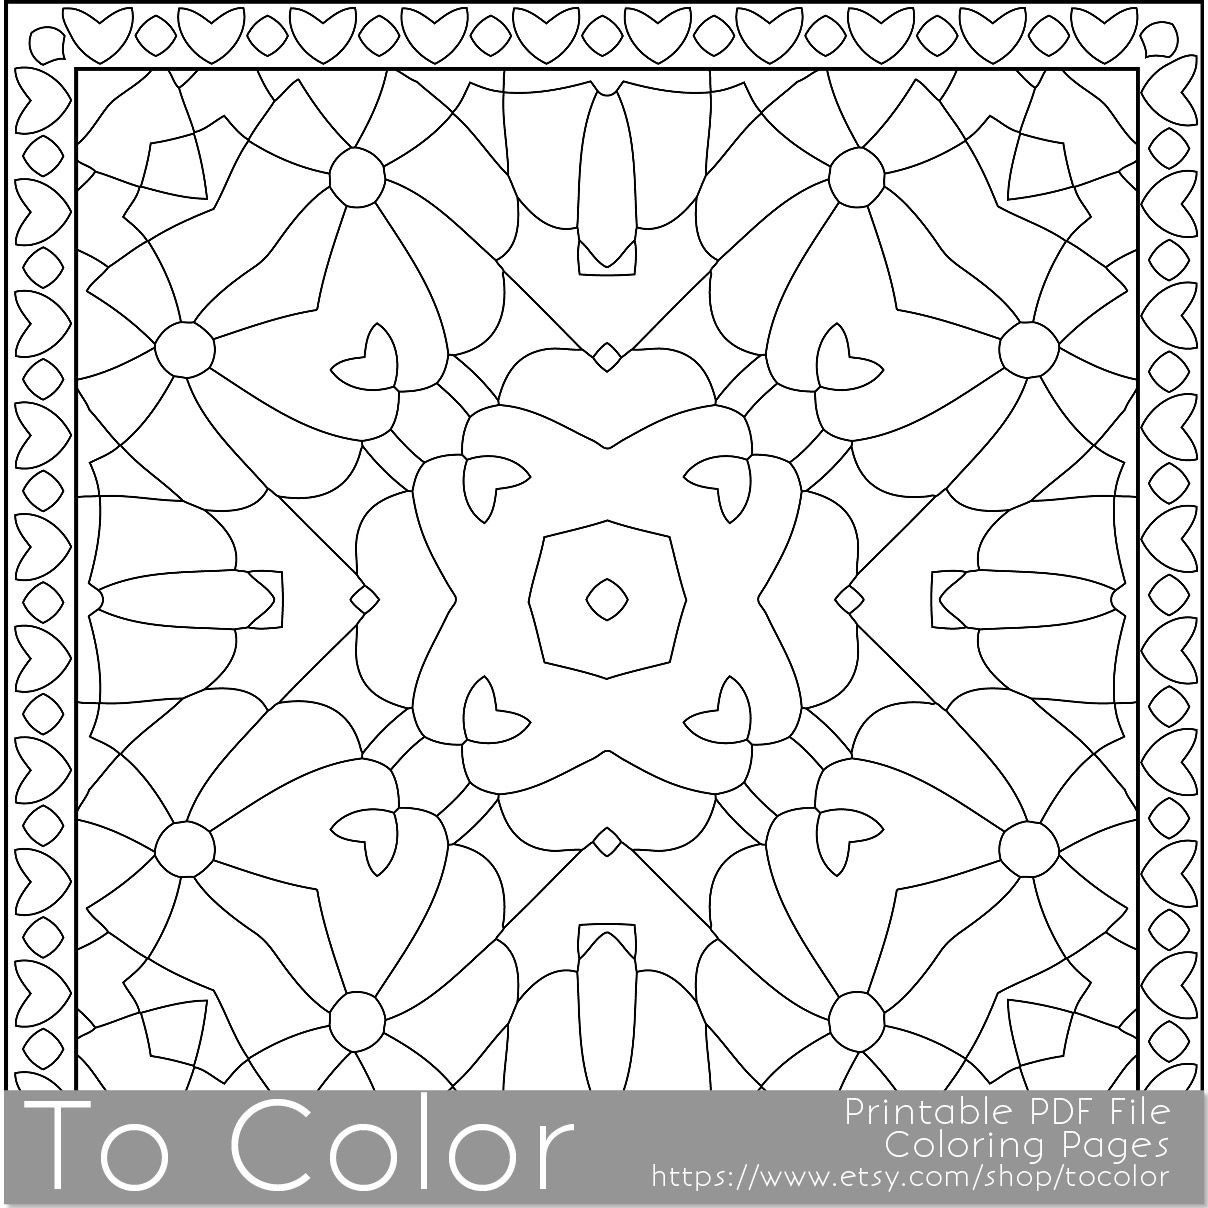 This is a geometric mandala pattern printable coloring page for